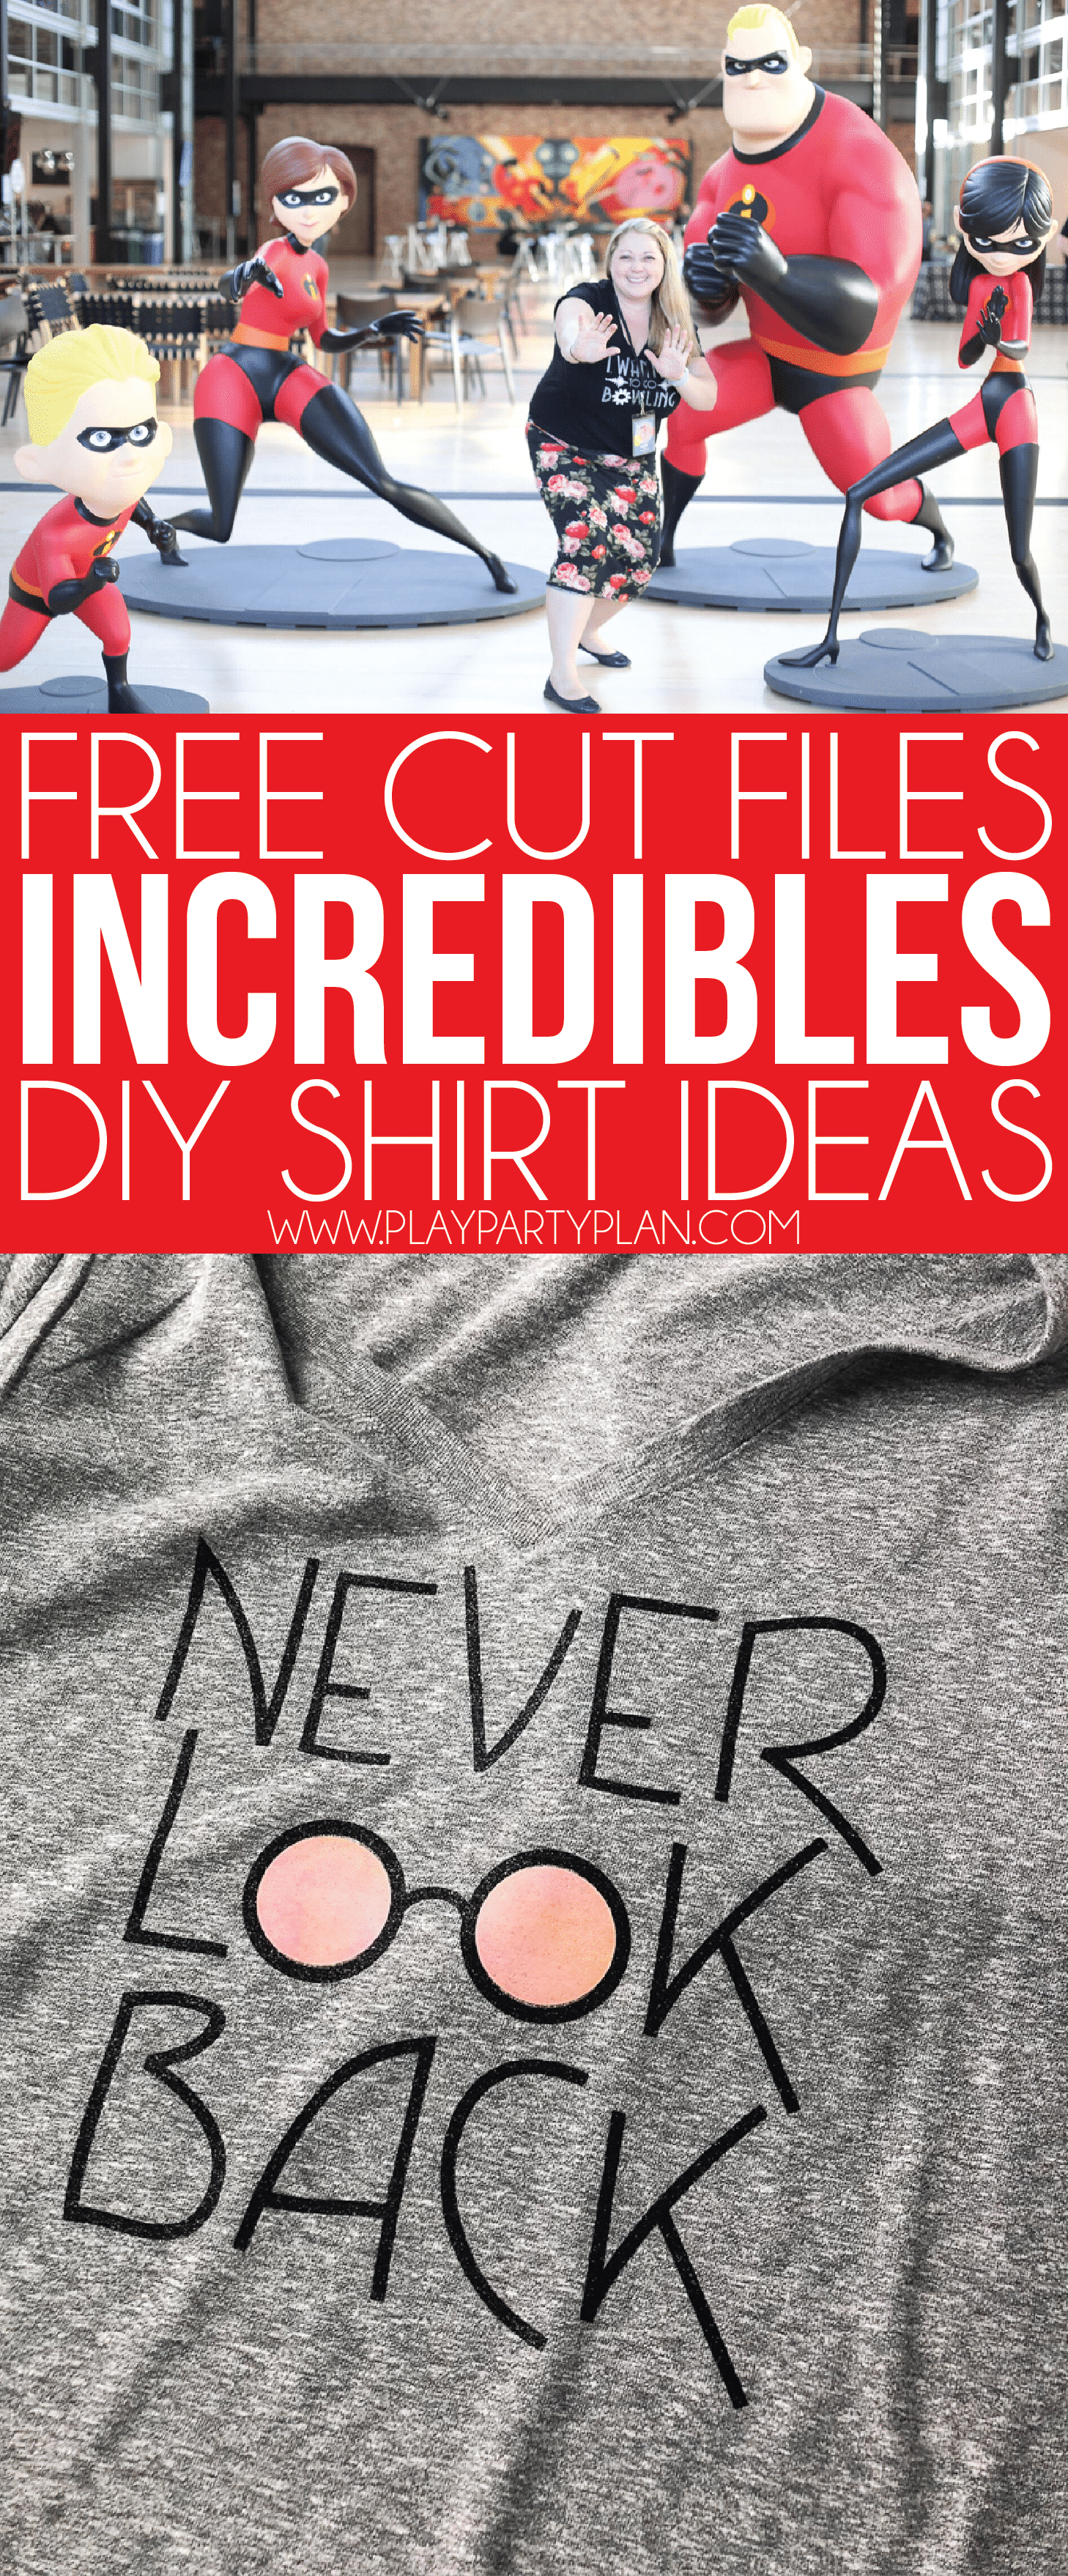 DIY Disney Incredibles shirt ideas! Awesome tees inspired by Edna, Frozone, and the Incredibles movie in general! These ideas would be perfect on workout tanks, long sleeve shirts, or just an outfit to wear to Disney!